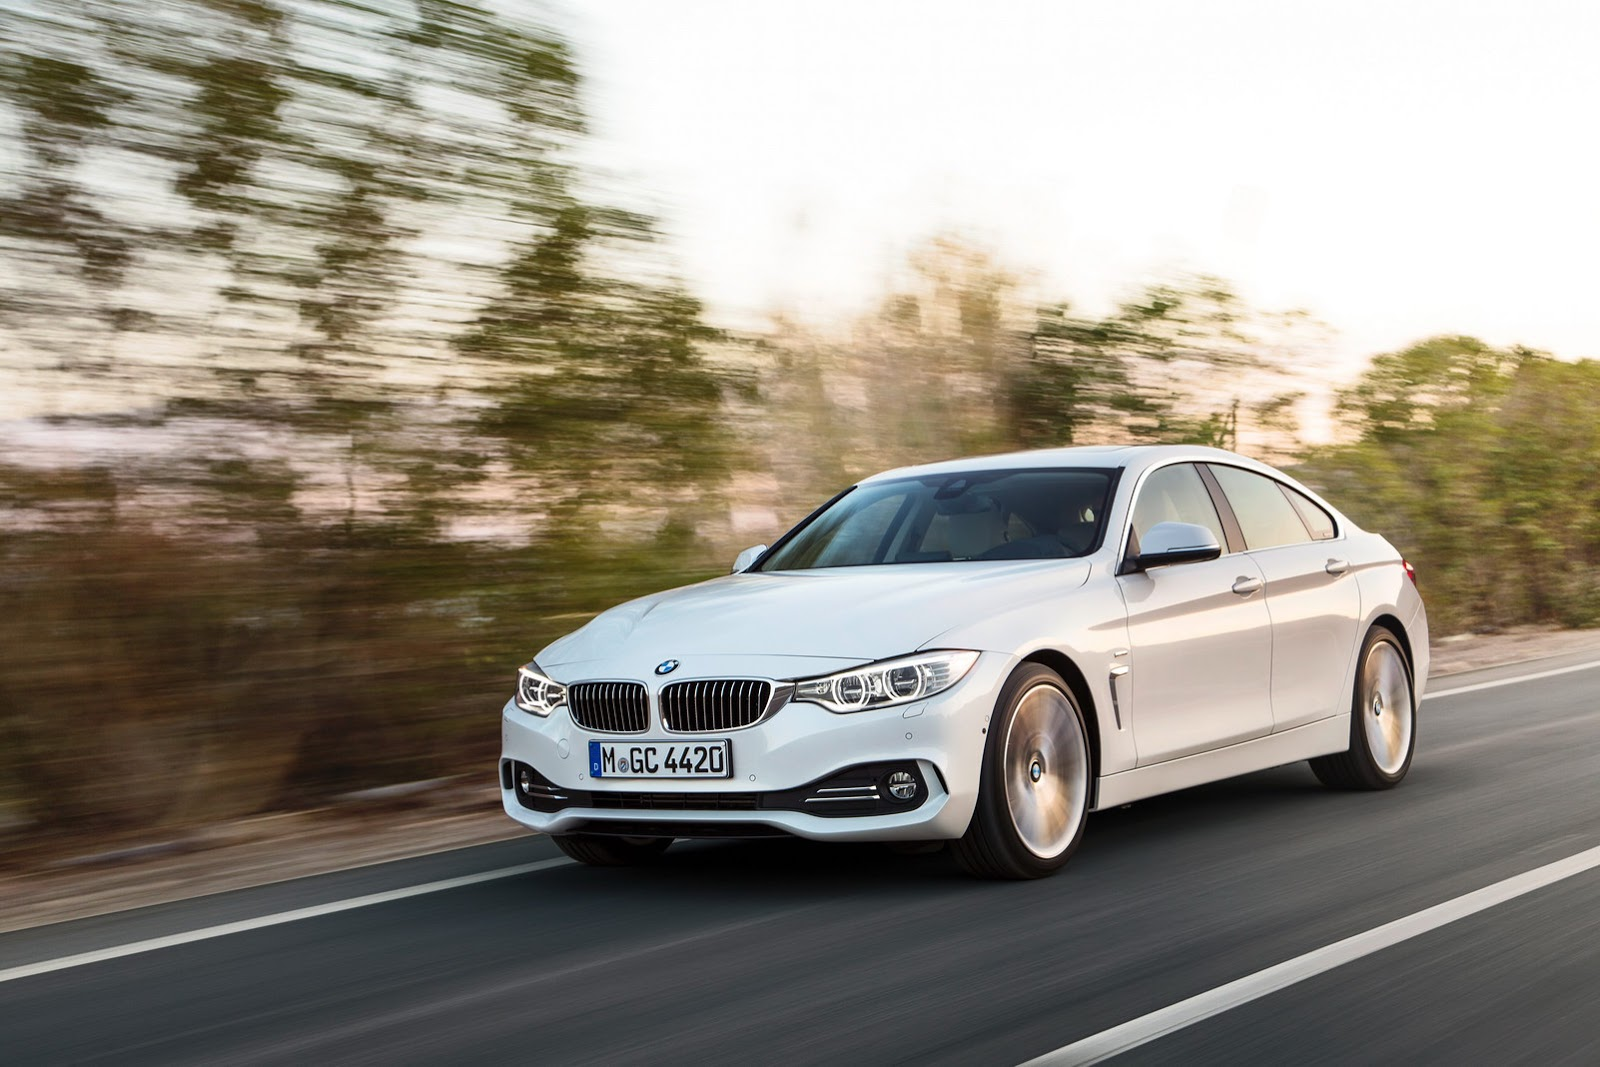 Bmw 7 Series 2015 Price